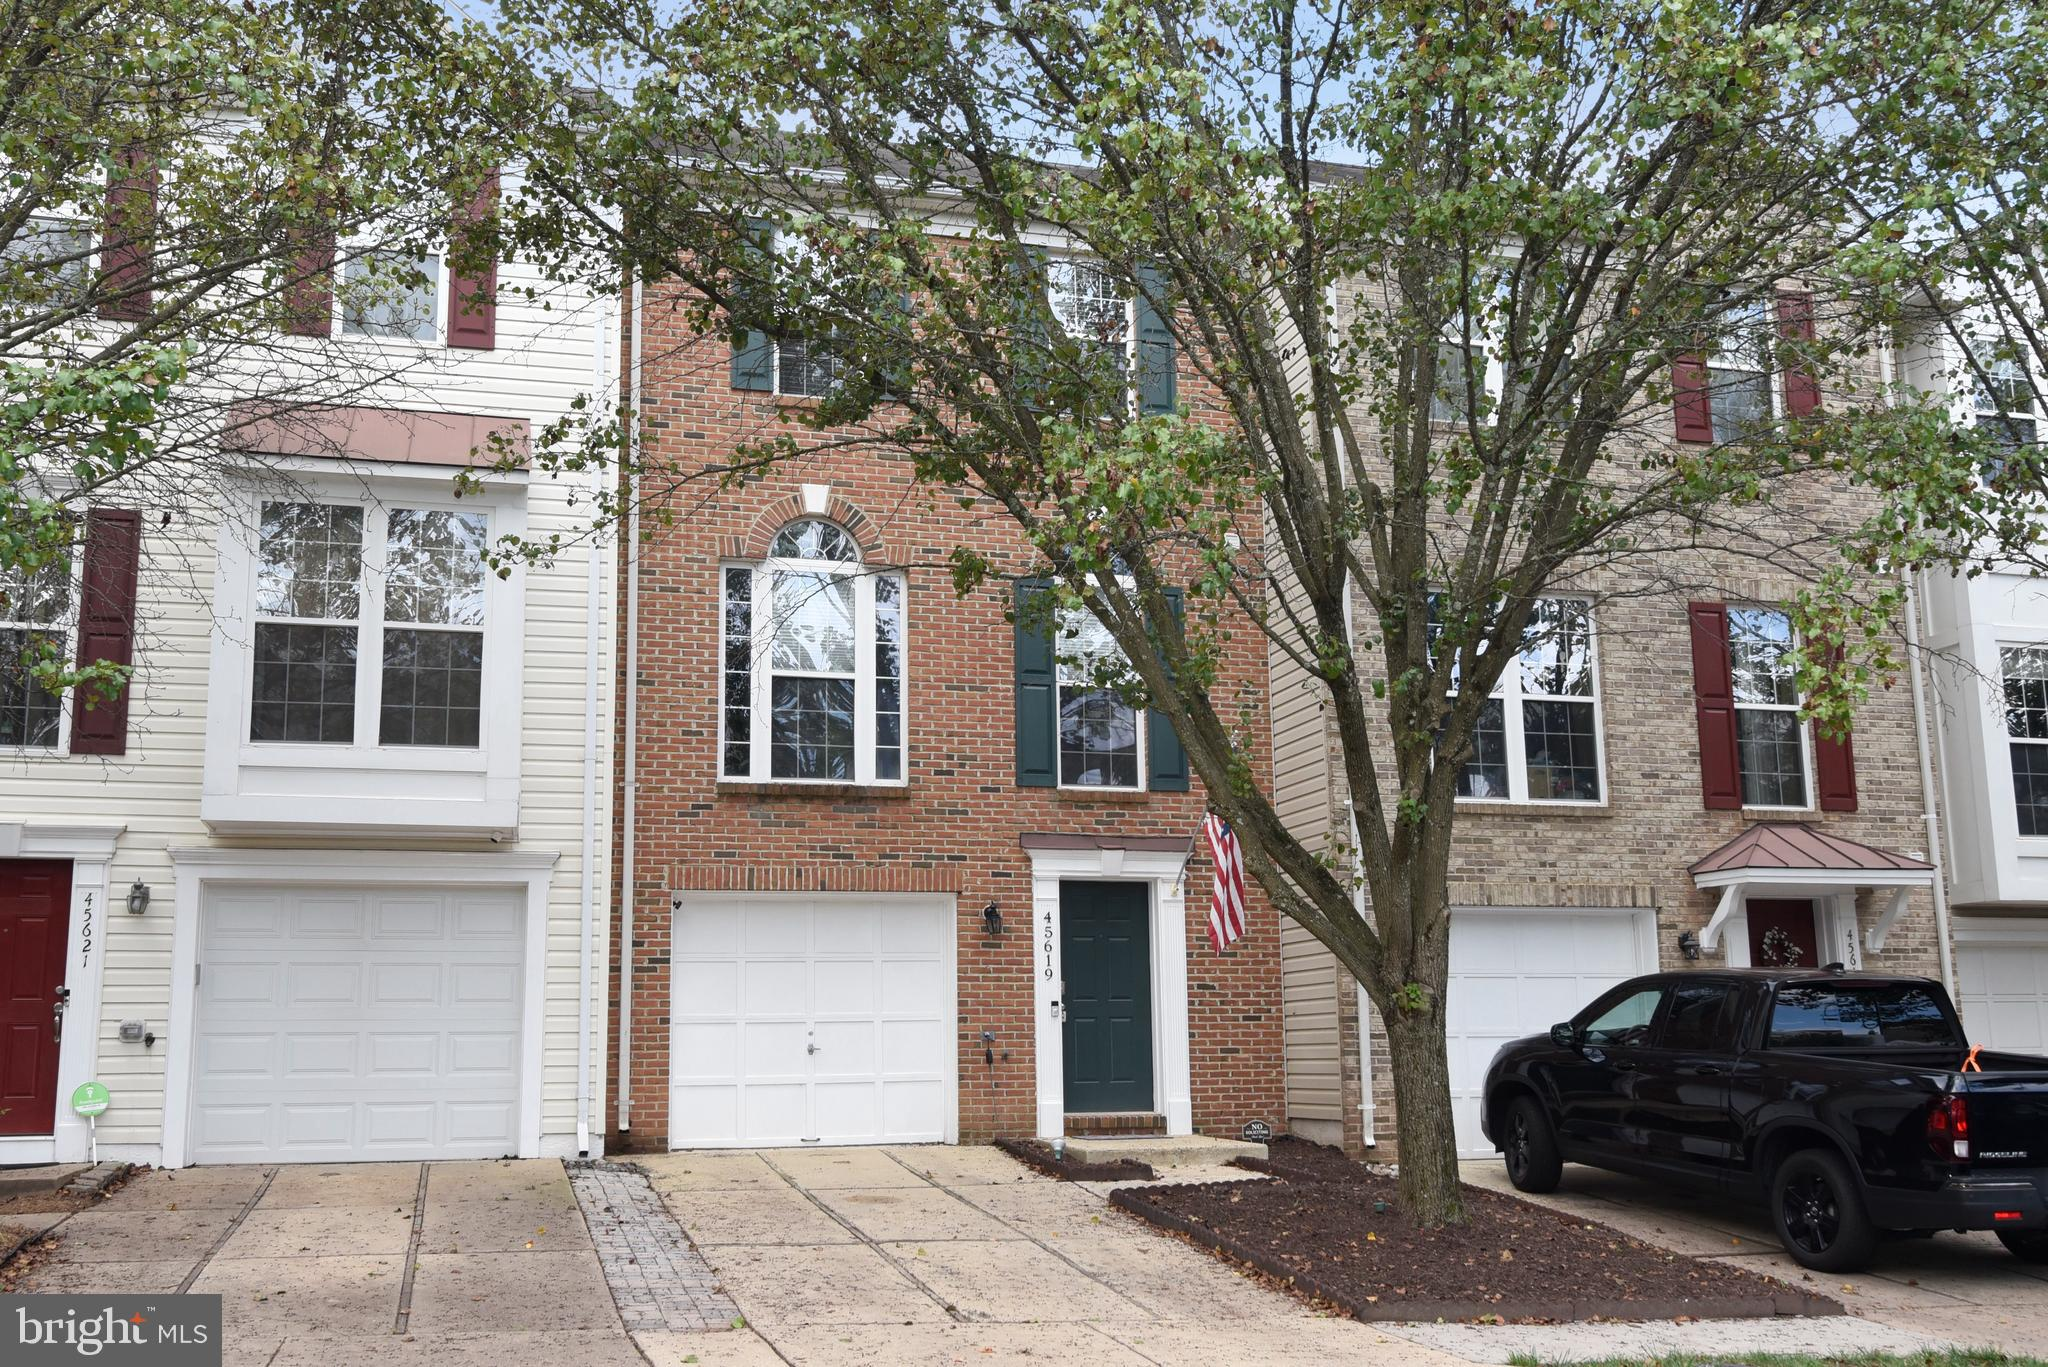 HOME LOCATED AT END OF QUIET STREET / NO THRU TRAFFIC / LG STAINLESS STEEL APPLIANCES <2YRS OLD / H2O & LENNOX FURNANCE <2YRS OLD / LENNOX AC <4 YRS OLD / UPGRADED TO DUAL ZONE /  SAMSUNG WASHER & DRYER SET <1YR OLD / CARPET & PAINT UPDATED / 10X10 BUMPOUTS ON ALL 3 LEVELS / DECK  & PAVER STAMPED PATIO W. FENCED IN YEAR YARD WITH NO MAINTEANCE TURF GRASS.  CLOSE TO RT 28/7 ETC.